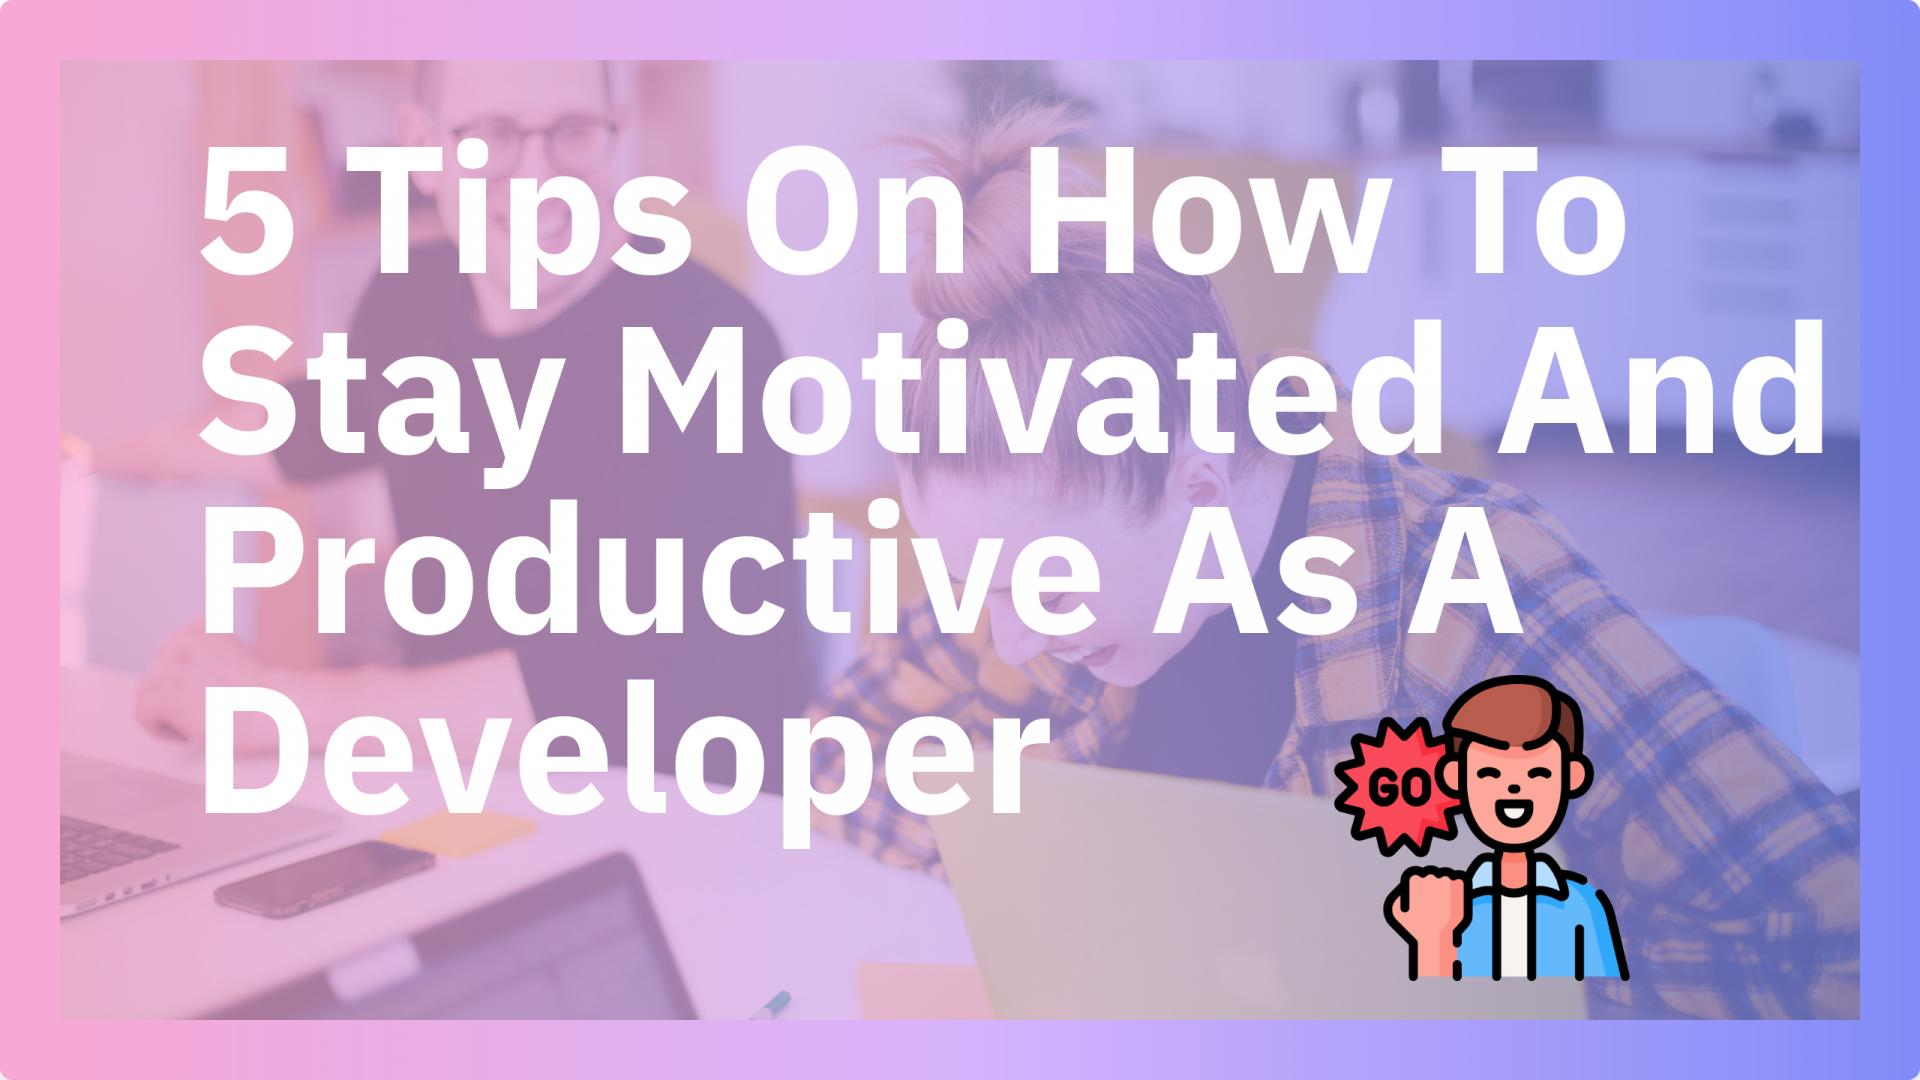 5 Tips On How To Stay Motivated And Productive As A Developer